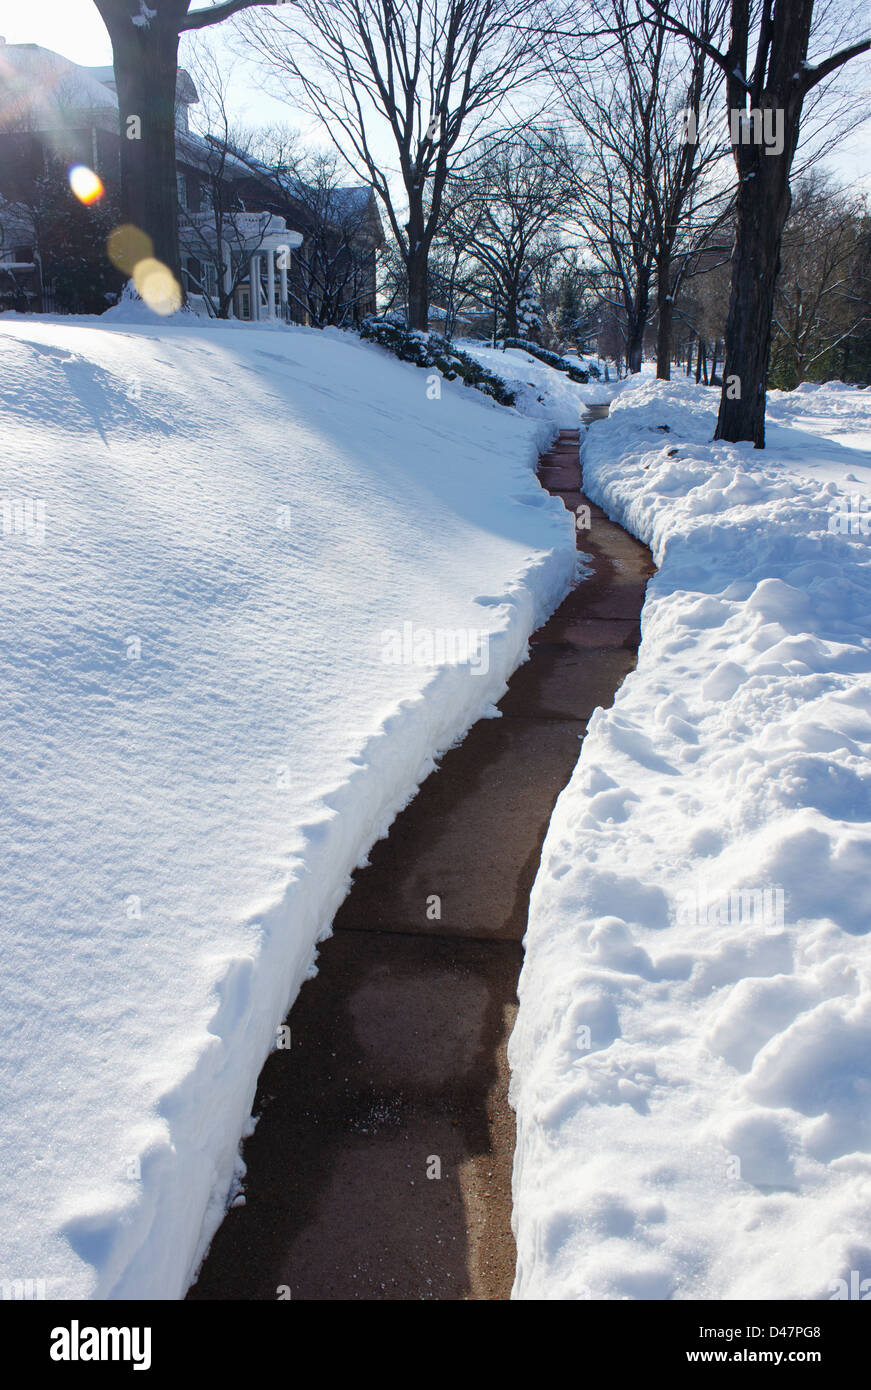 Long snowy path in a residential neighborhood. - Stock Image